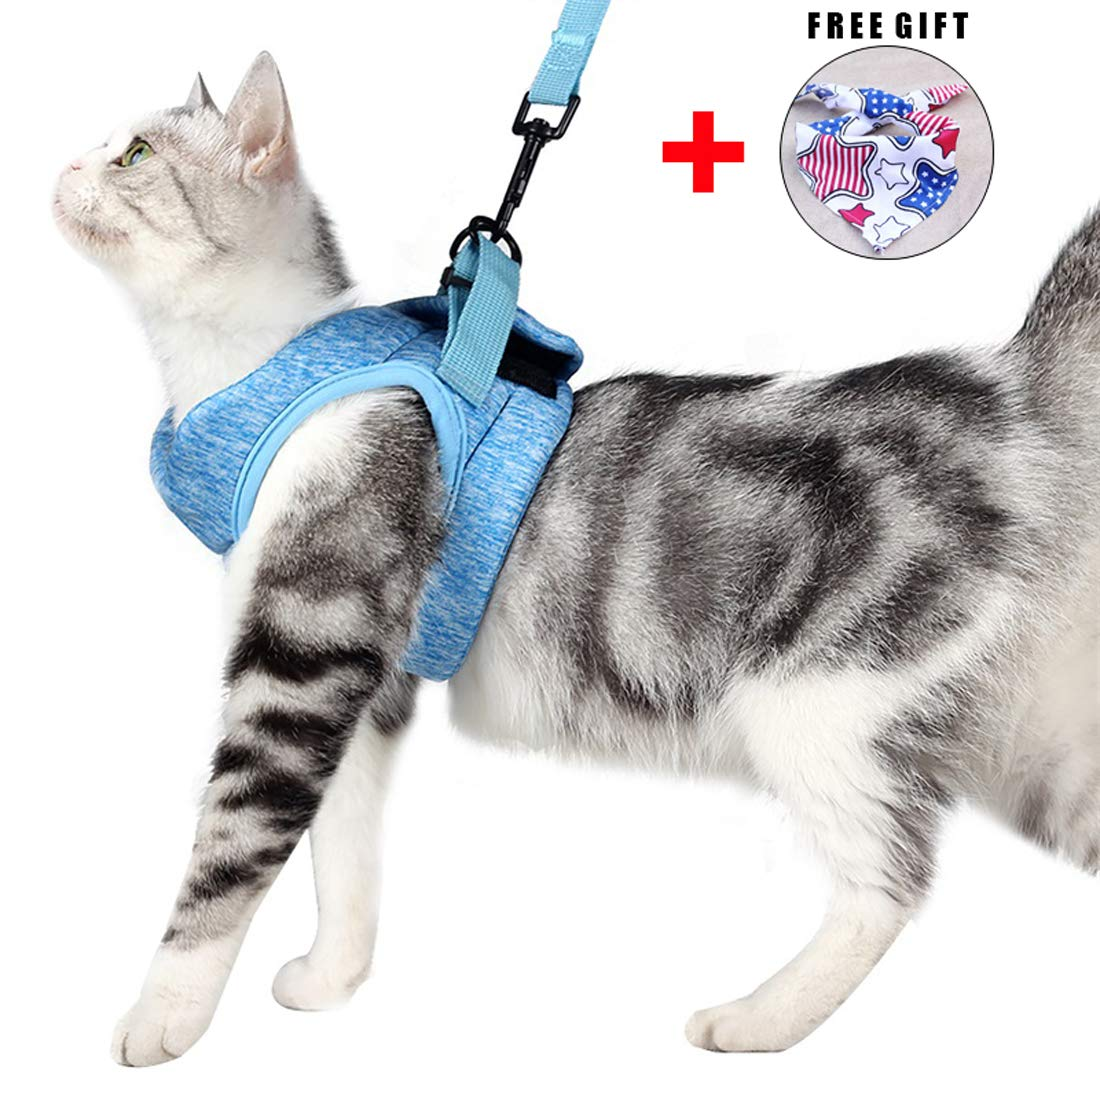 Wooruy Cat Harness and Leash Set for Walking 360° wrap-Around Small Cat and Dog Harness Cushioning and Anti-Escape…